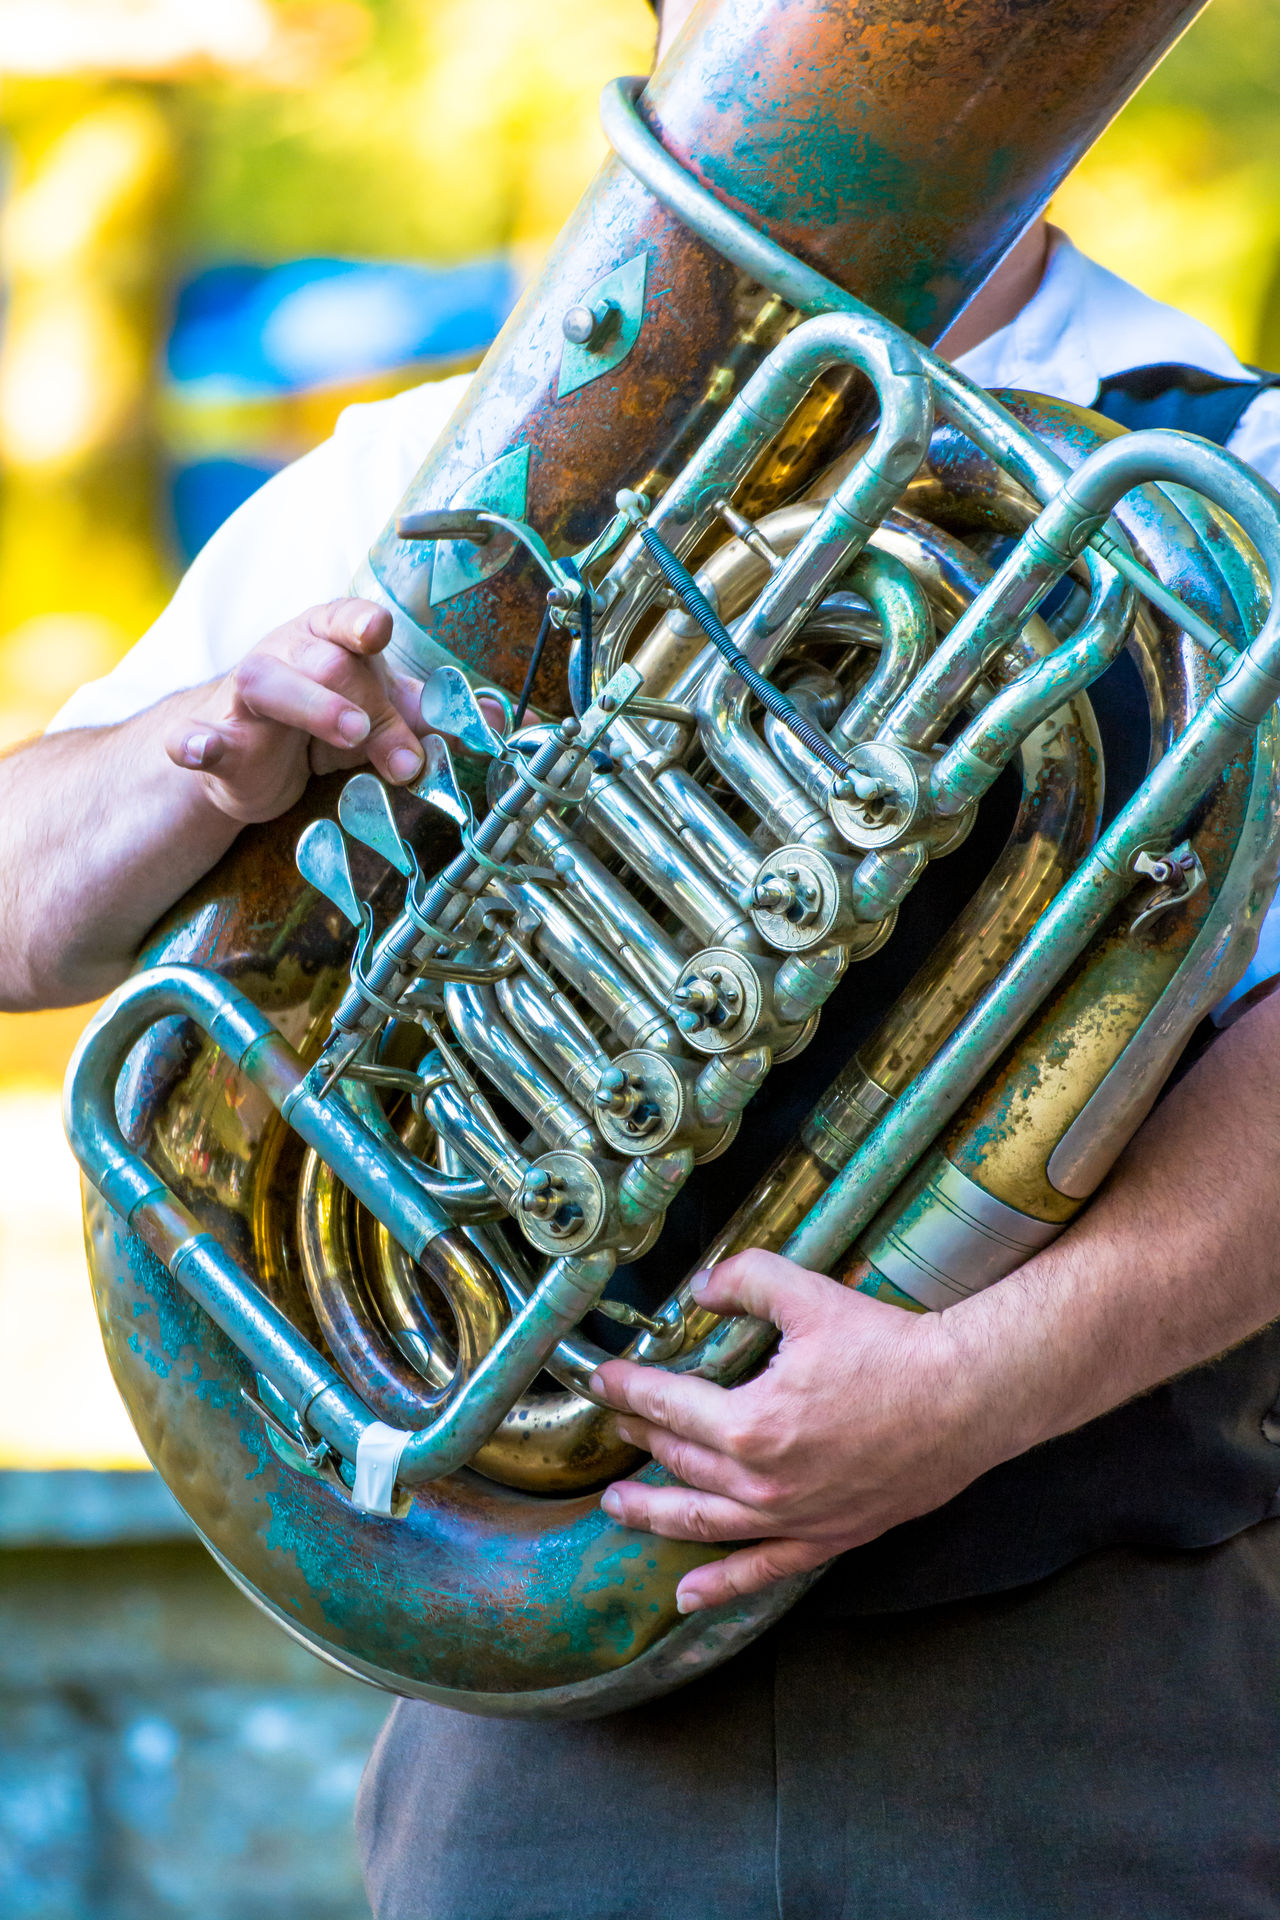 Close-up Concert Concert Photography Cropped Day Focus On Foreground Forest Holding Human Finger Leisure Activity Lifestyles Live Music Machinery Metallic Music Musical Instruments Musician Outdoors Part Of Person Selective Focus Skill  Tuba Unrecognizable Person Work Tool